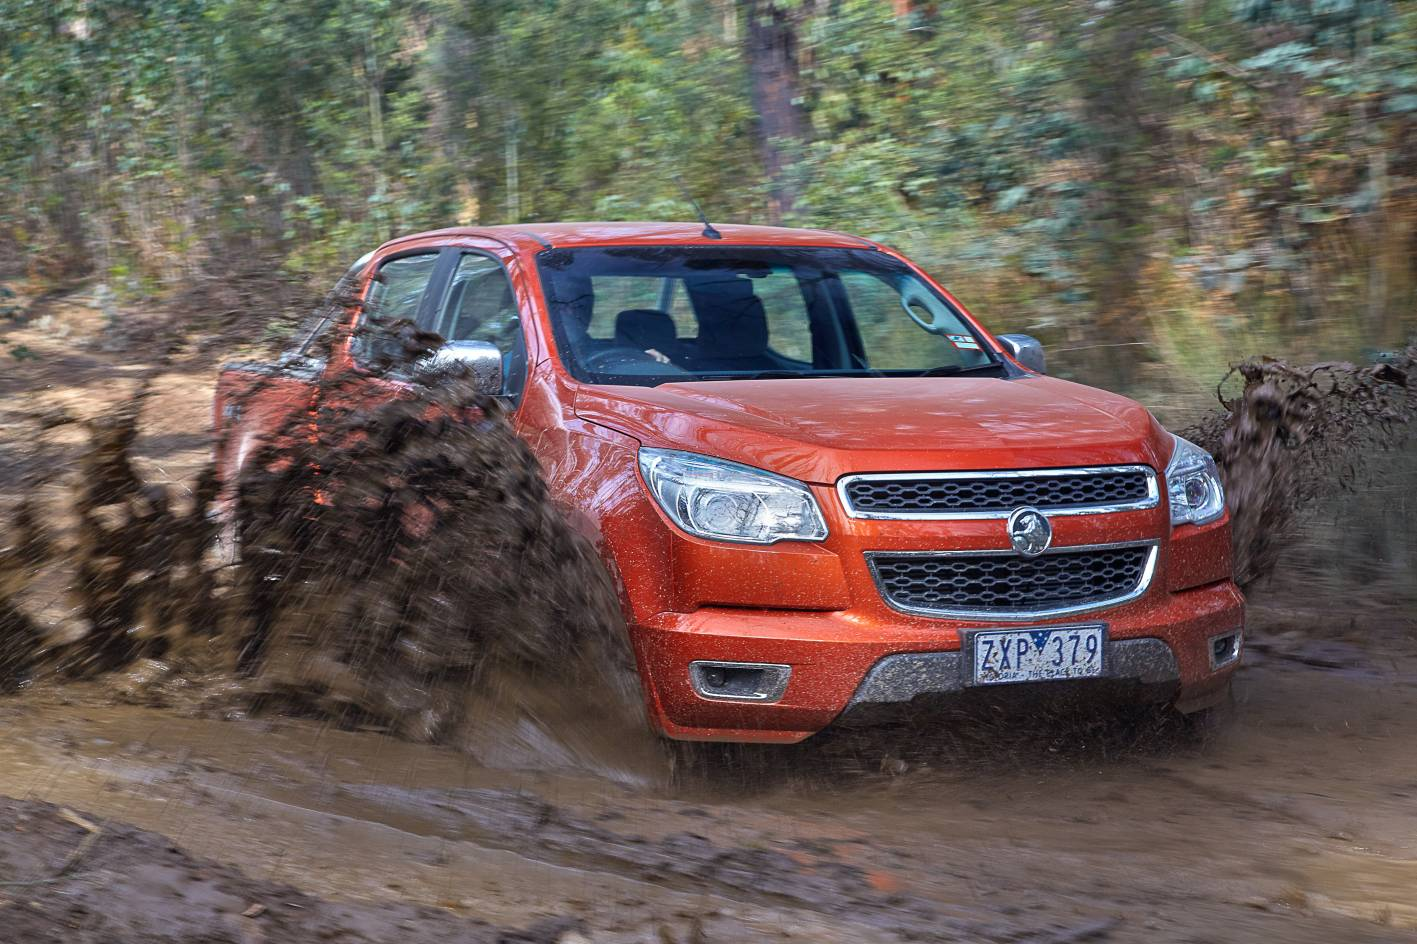 Should I Buy a Holden Colorado Ute or an Isuzu D-MAX? — Auto